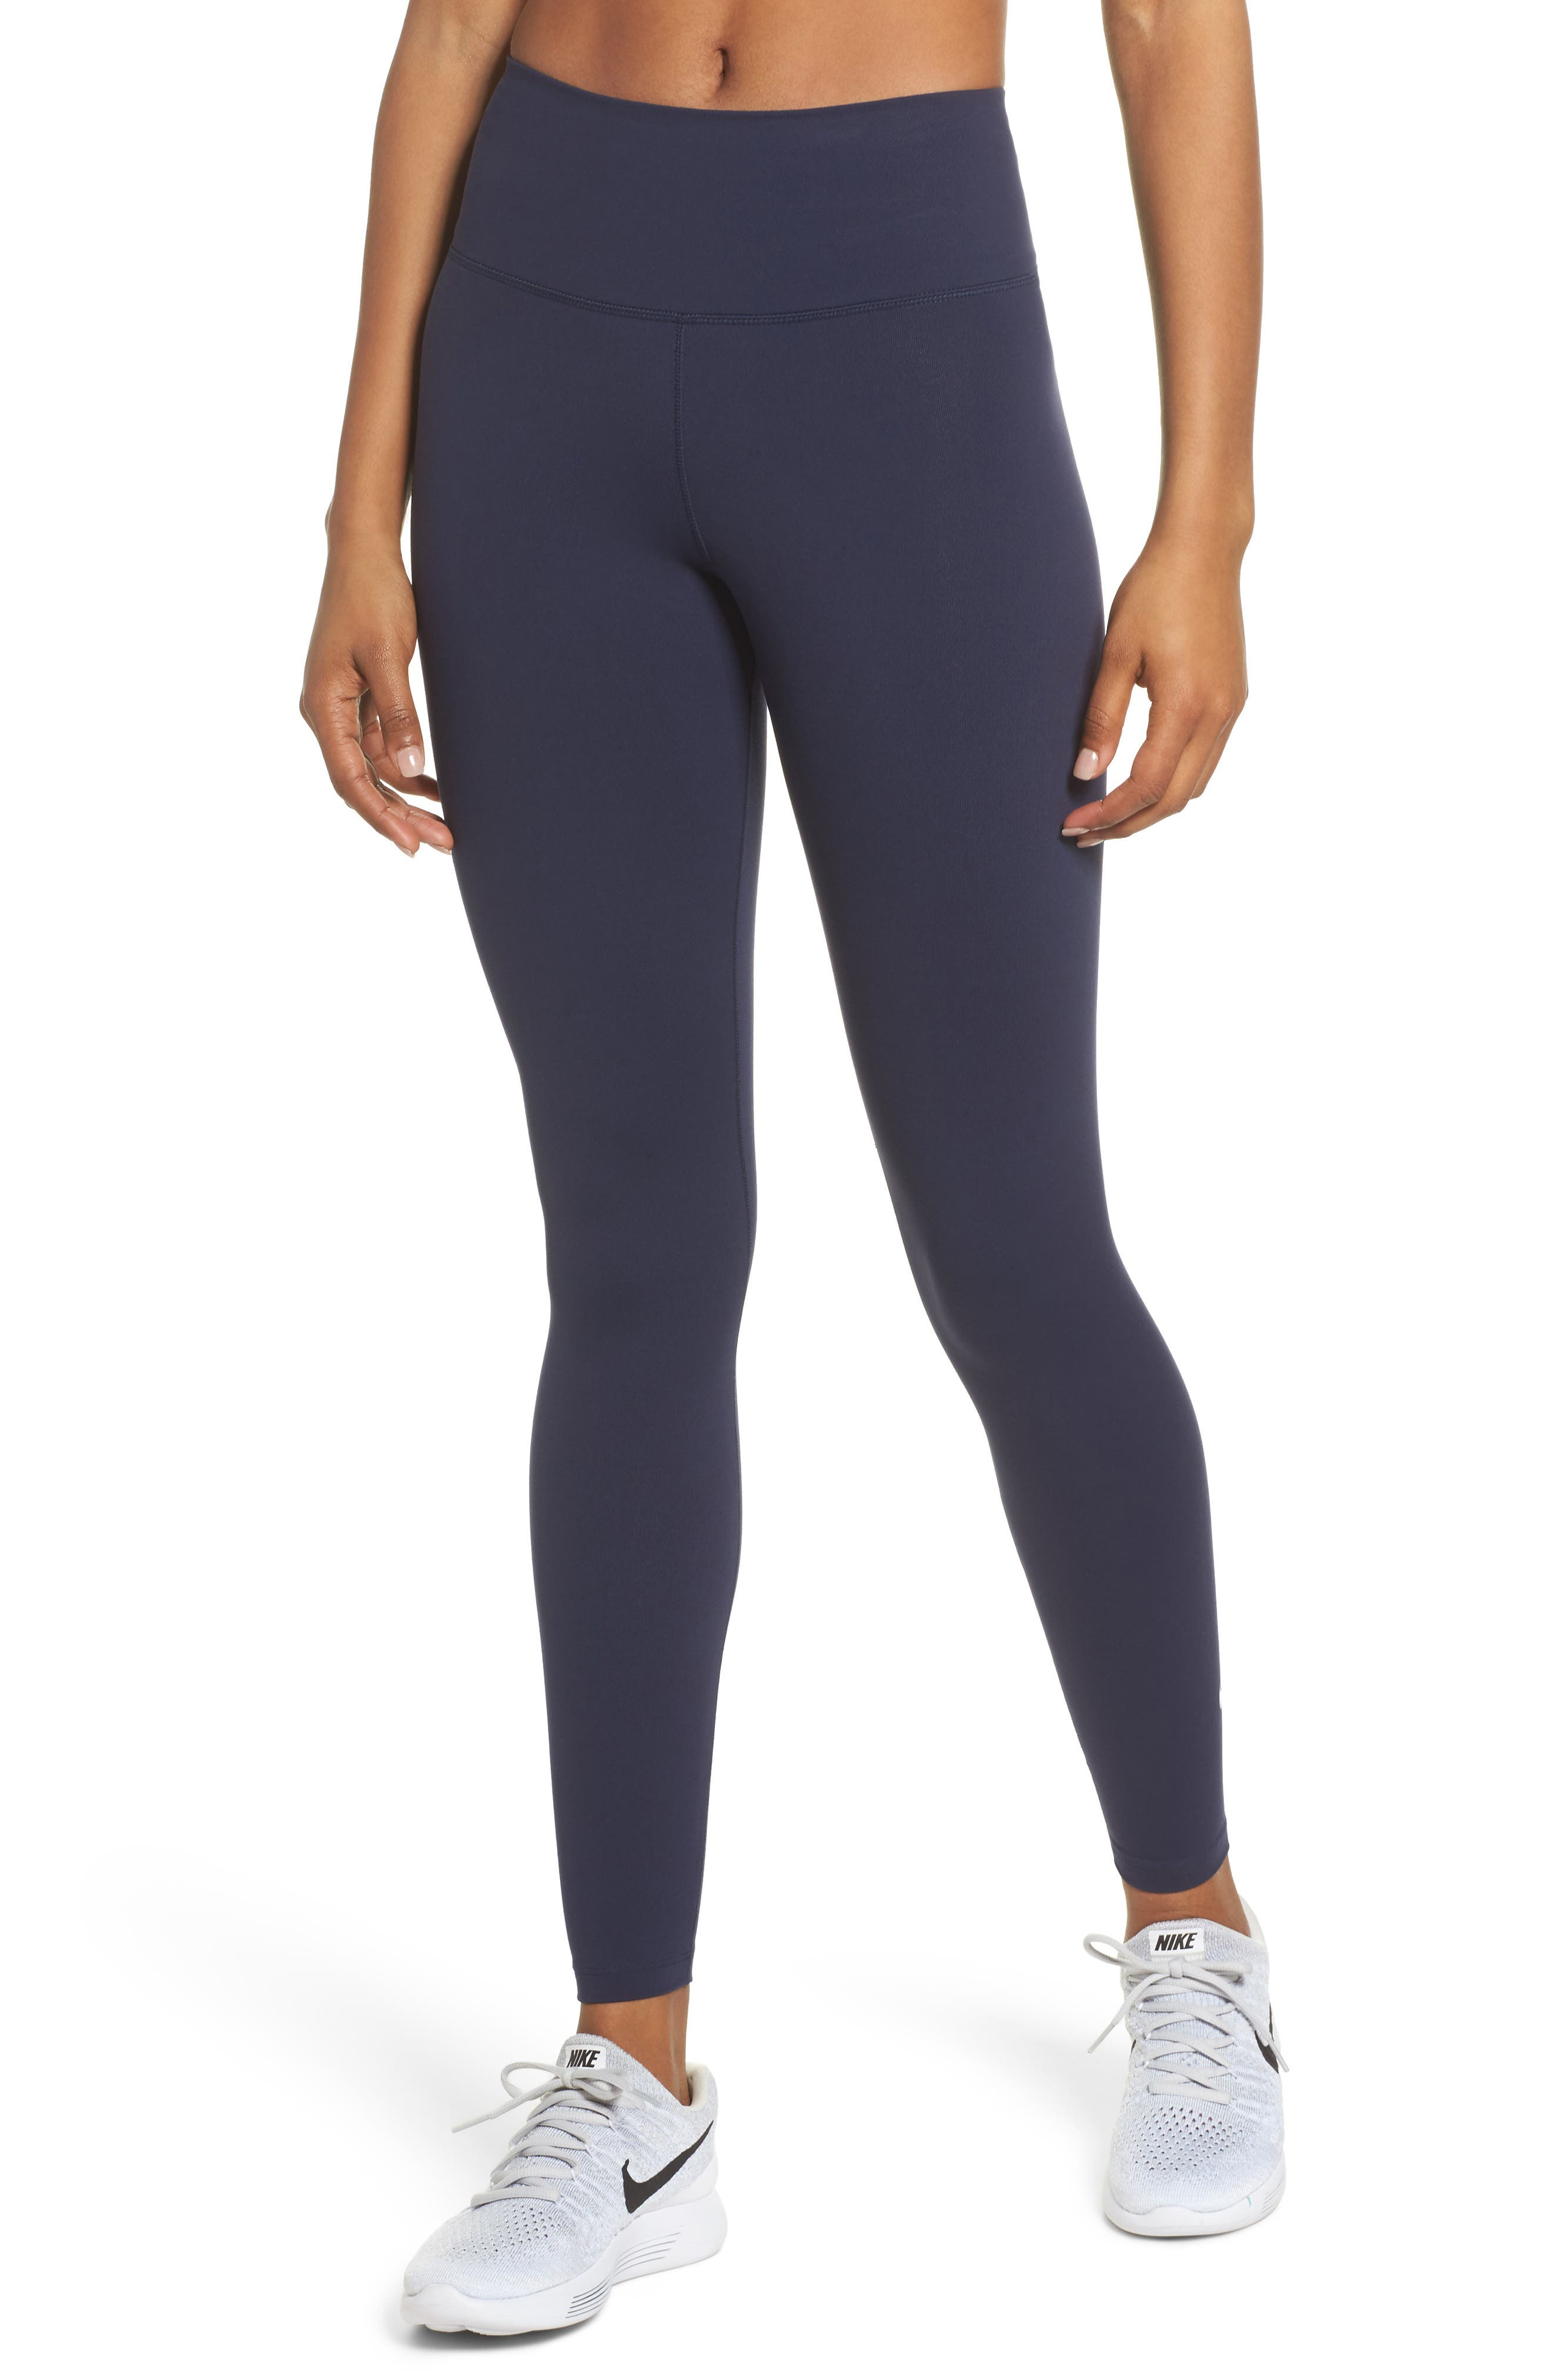 Sculpt Lux Training Tights,                         Main,                         color, Obsidian/Clear